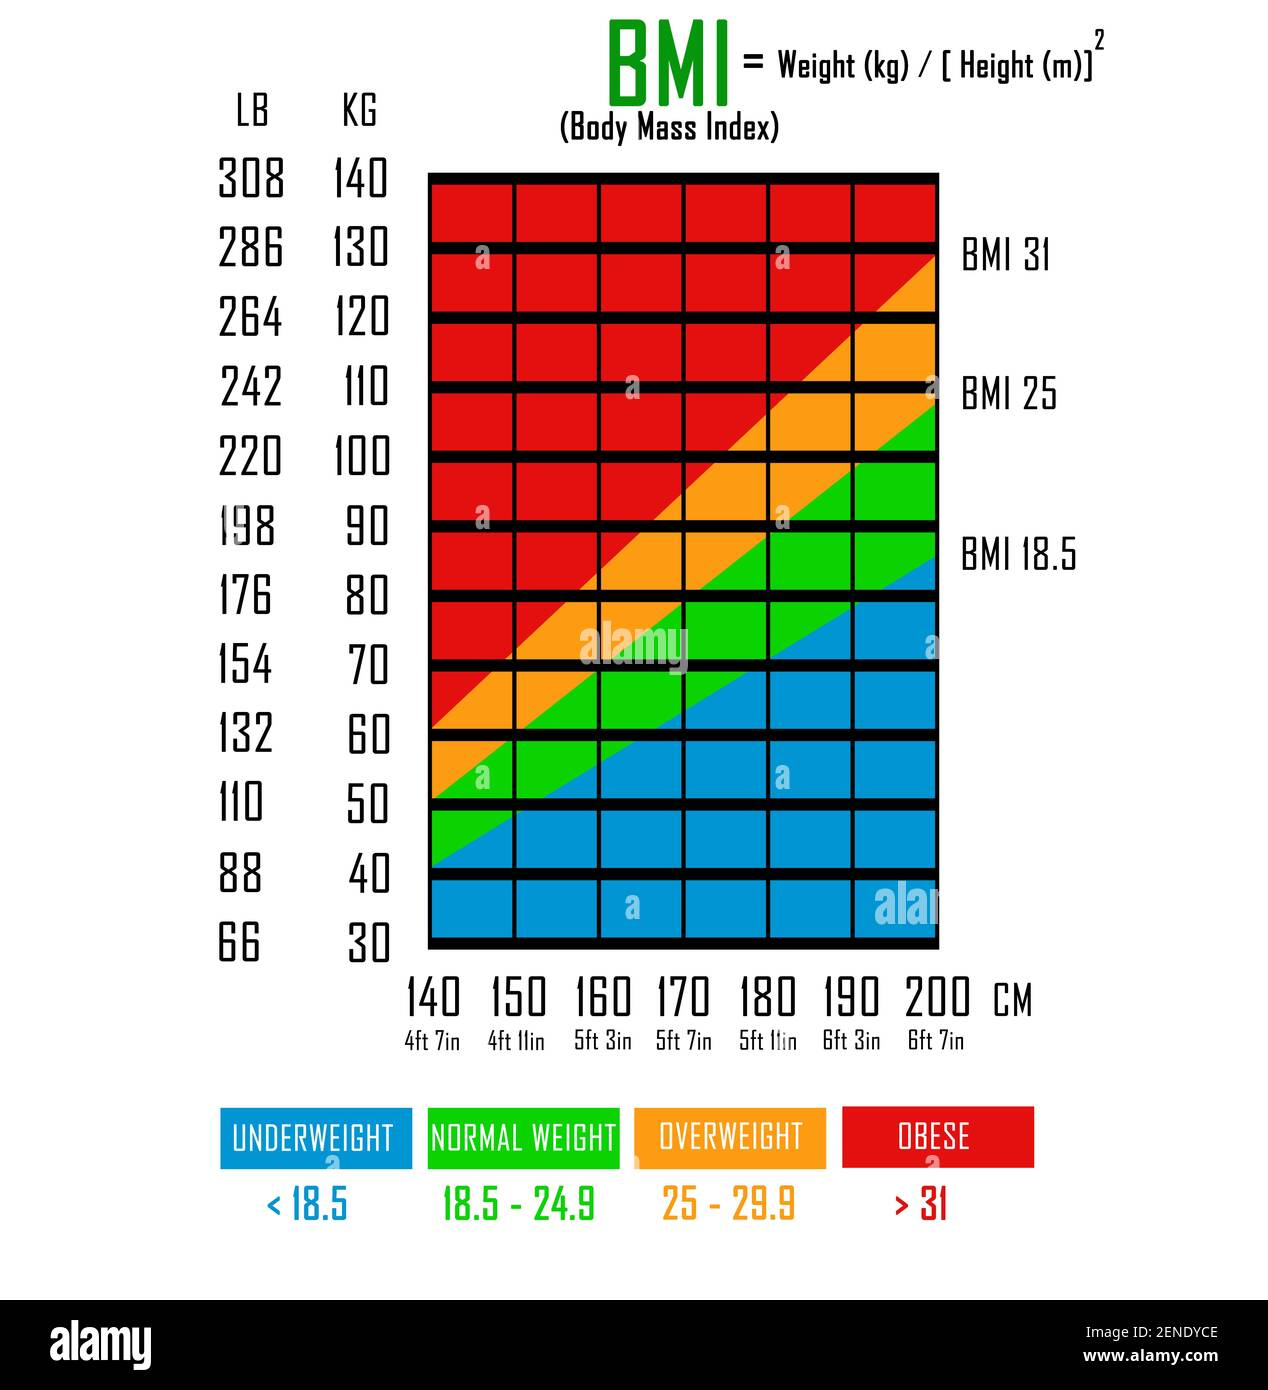 Bmi Index High Resolution Stock Photography and Images   Alamy